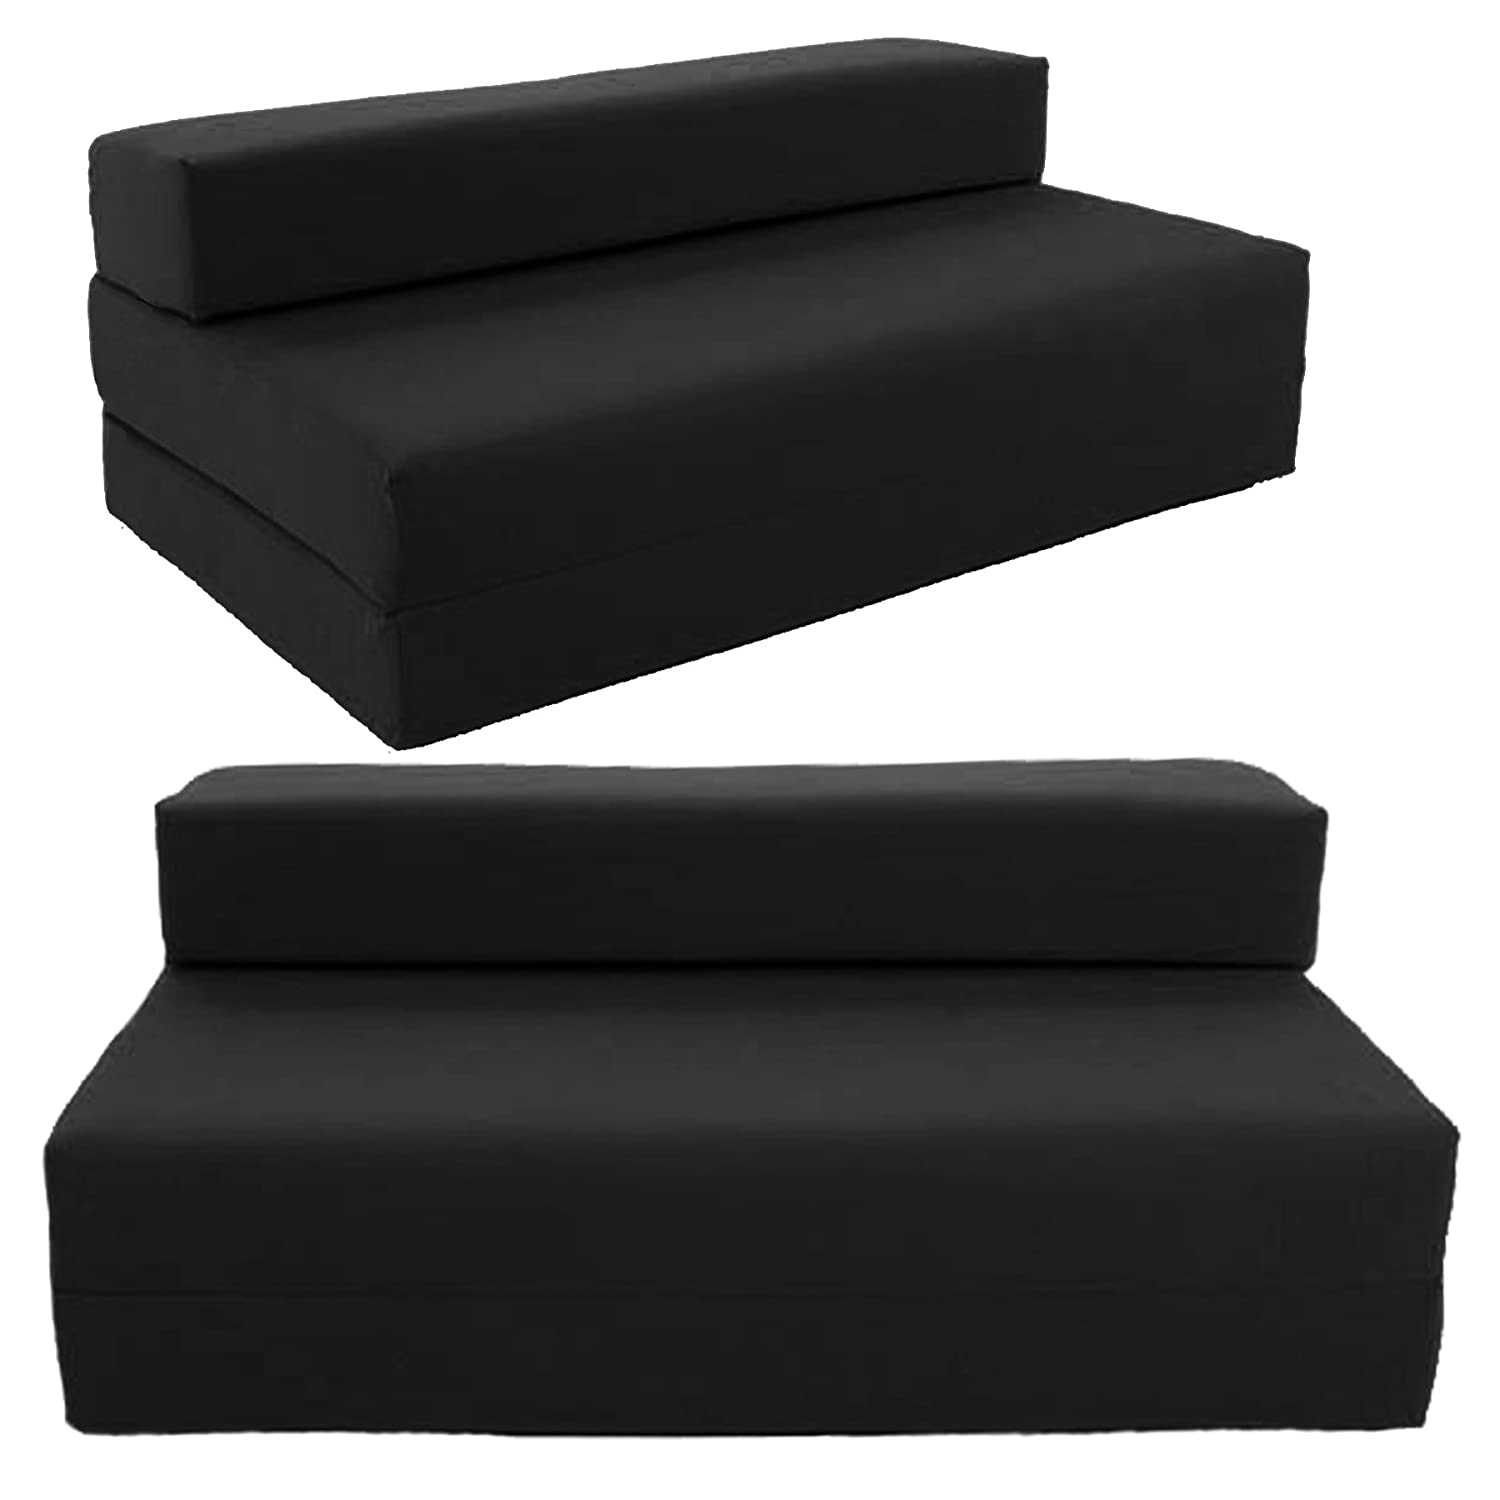 Folding bed chair - Gilda Double Sofa Bed Futon Black Indoor Outdoor Stain Resistant Fabric